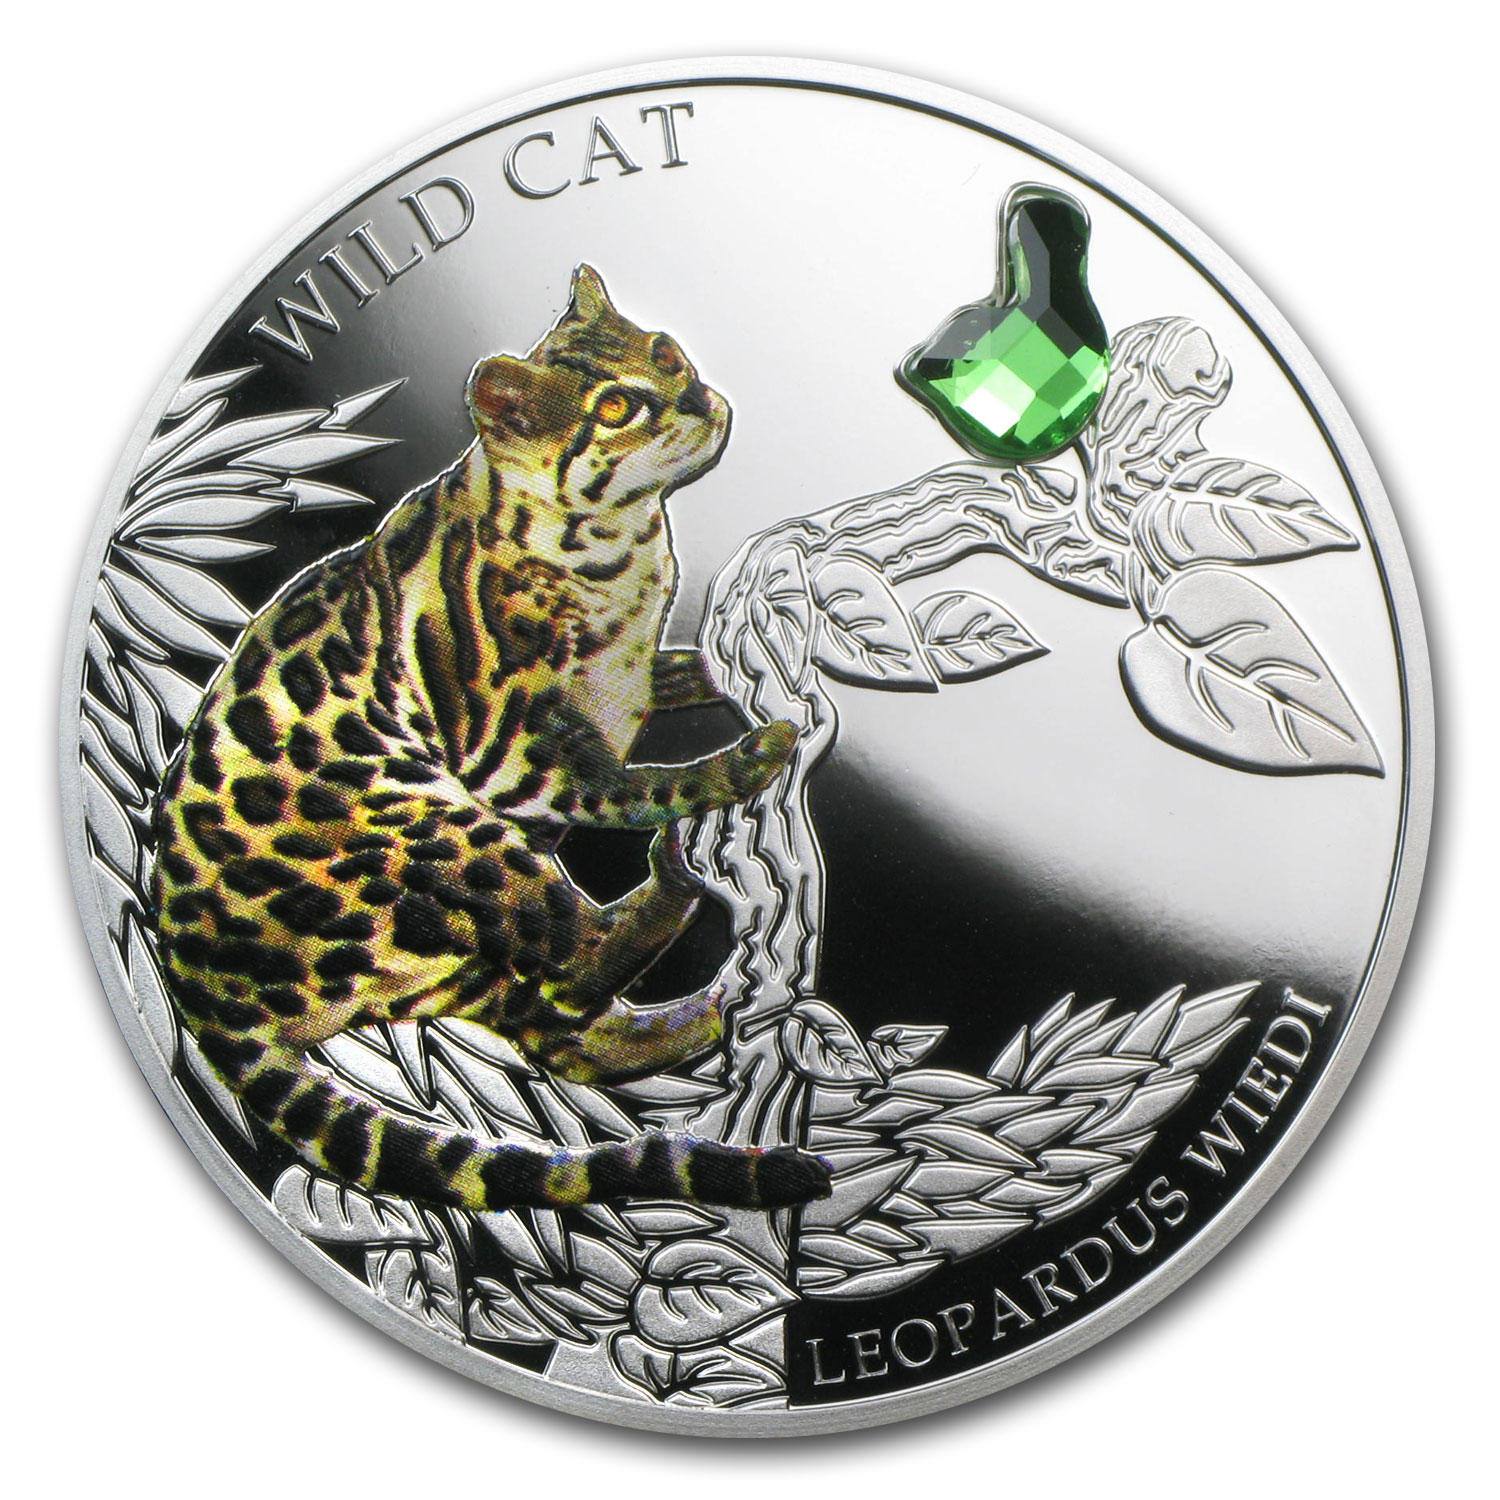 2013 Fiji Silver Dogs & Cats Series Wild Cat Leopardus Wiedi